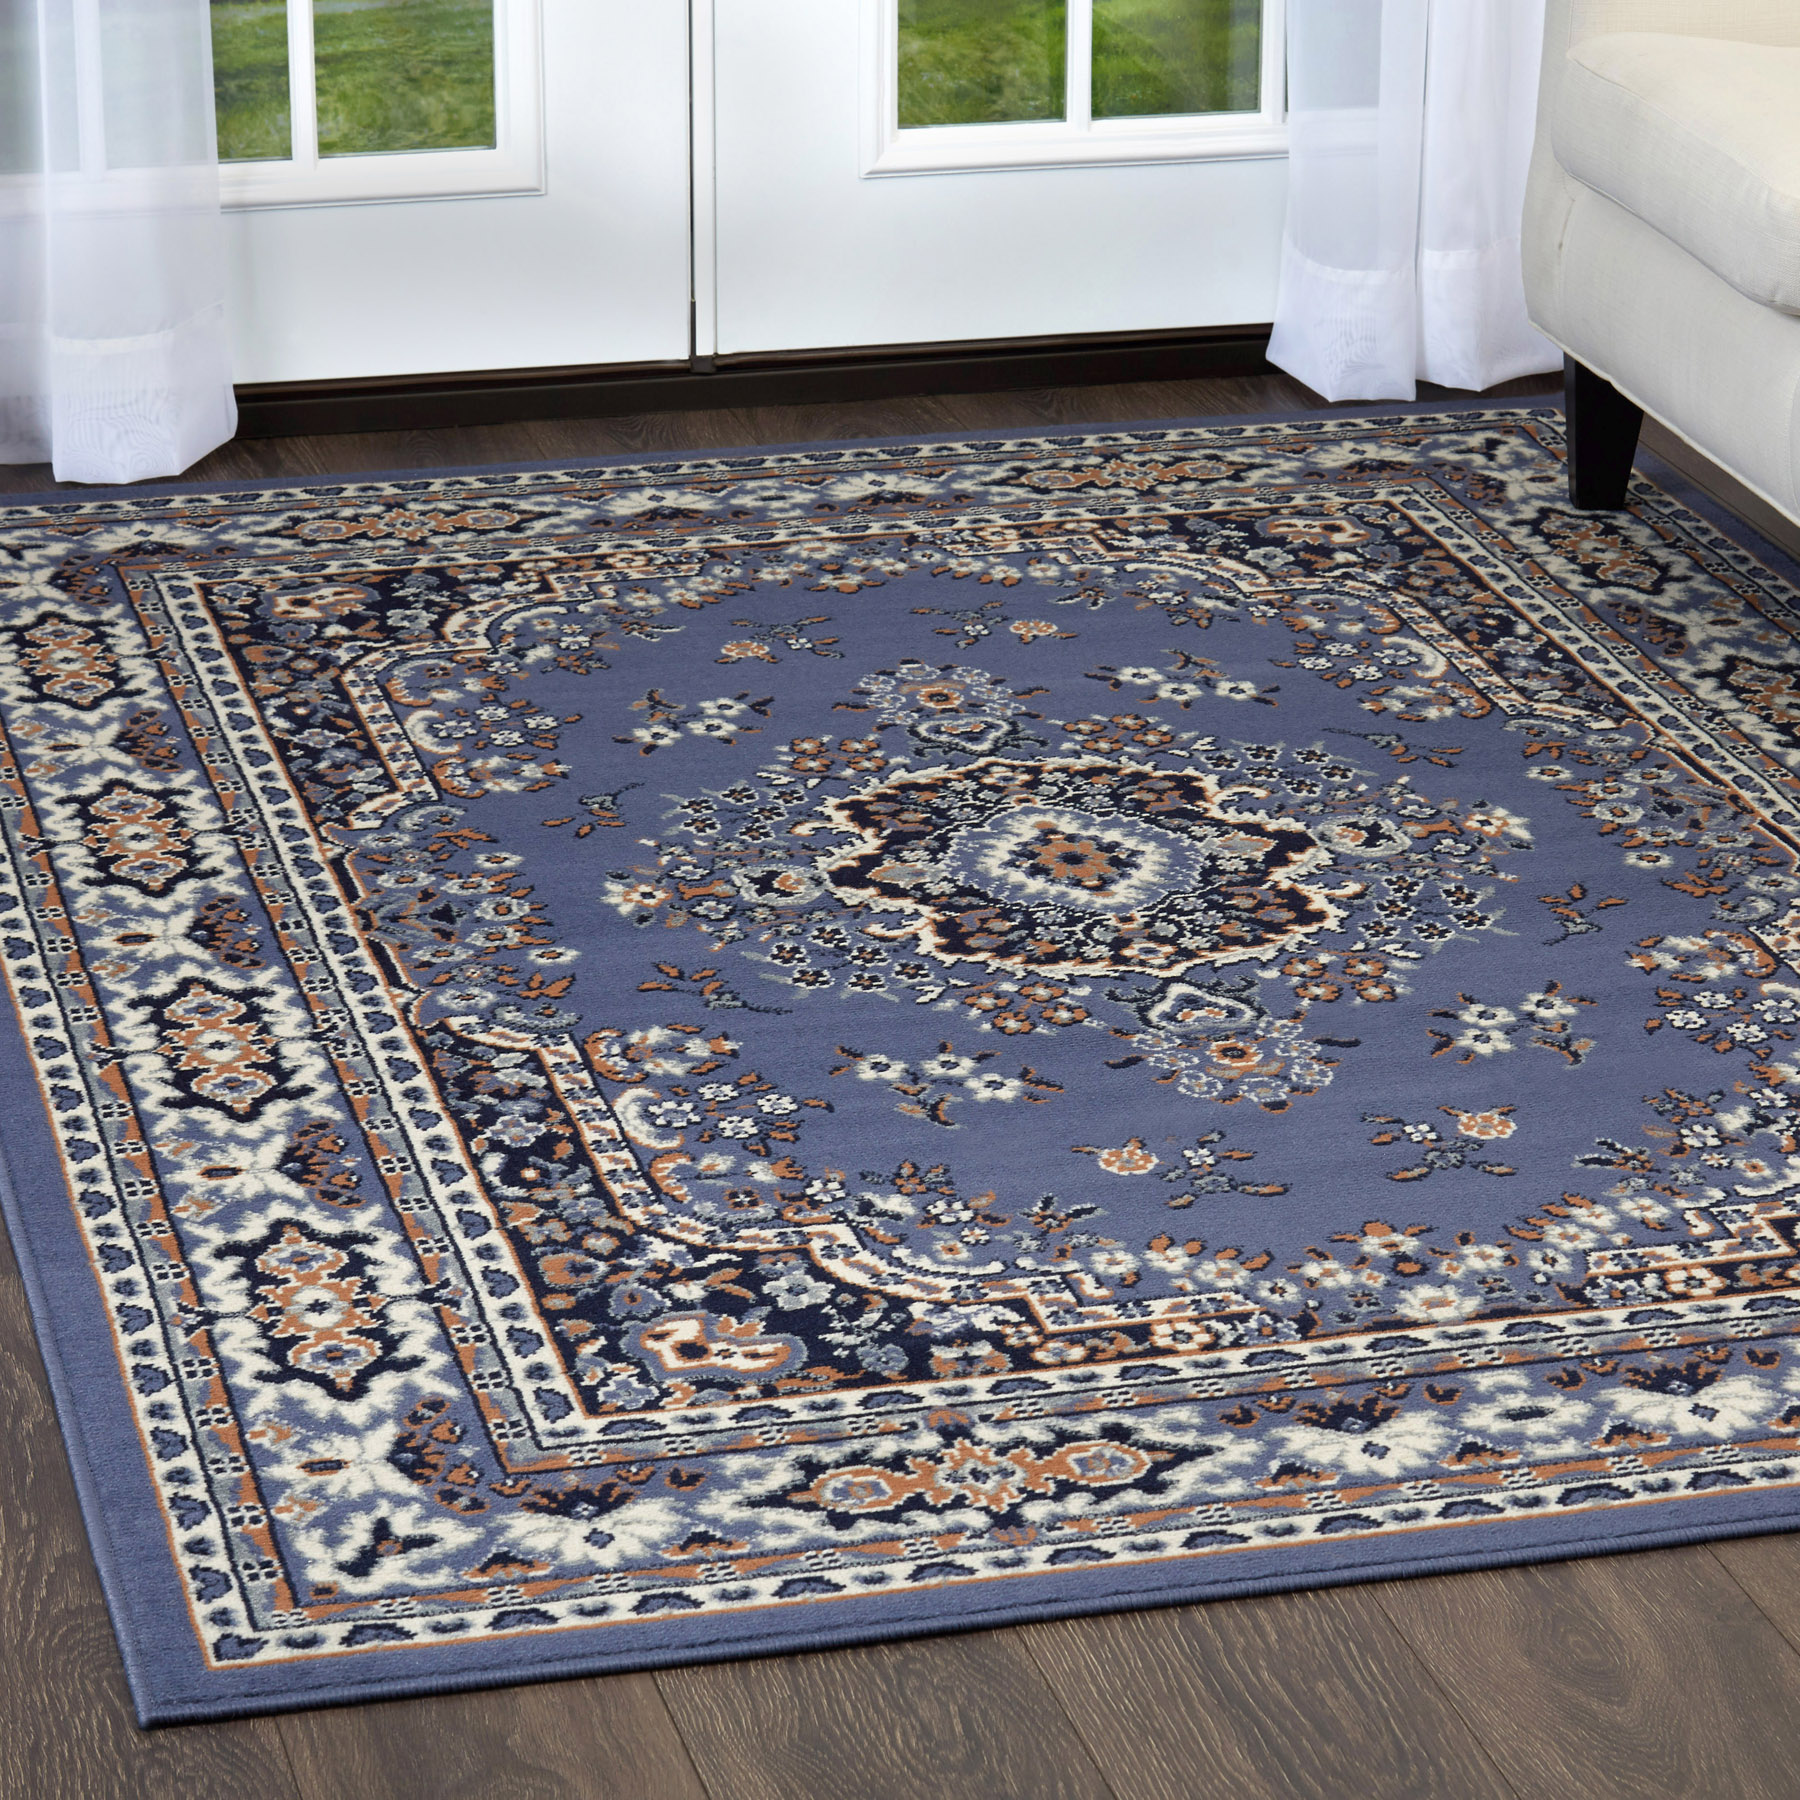 Large-Traditional-8x11-Oriental-Area-Rug-Persian-Style-Carpet-Approx-7-039-8-034-x10-039-8-034